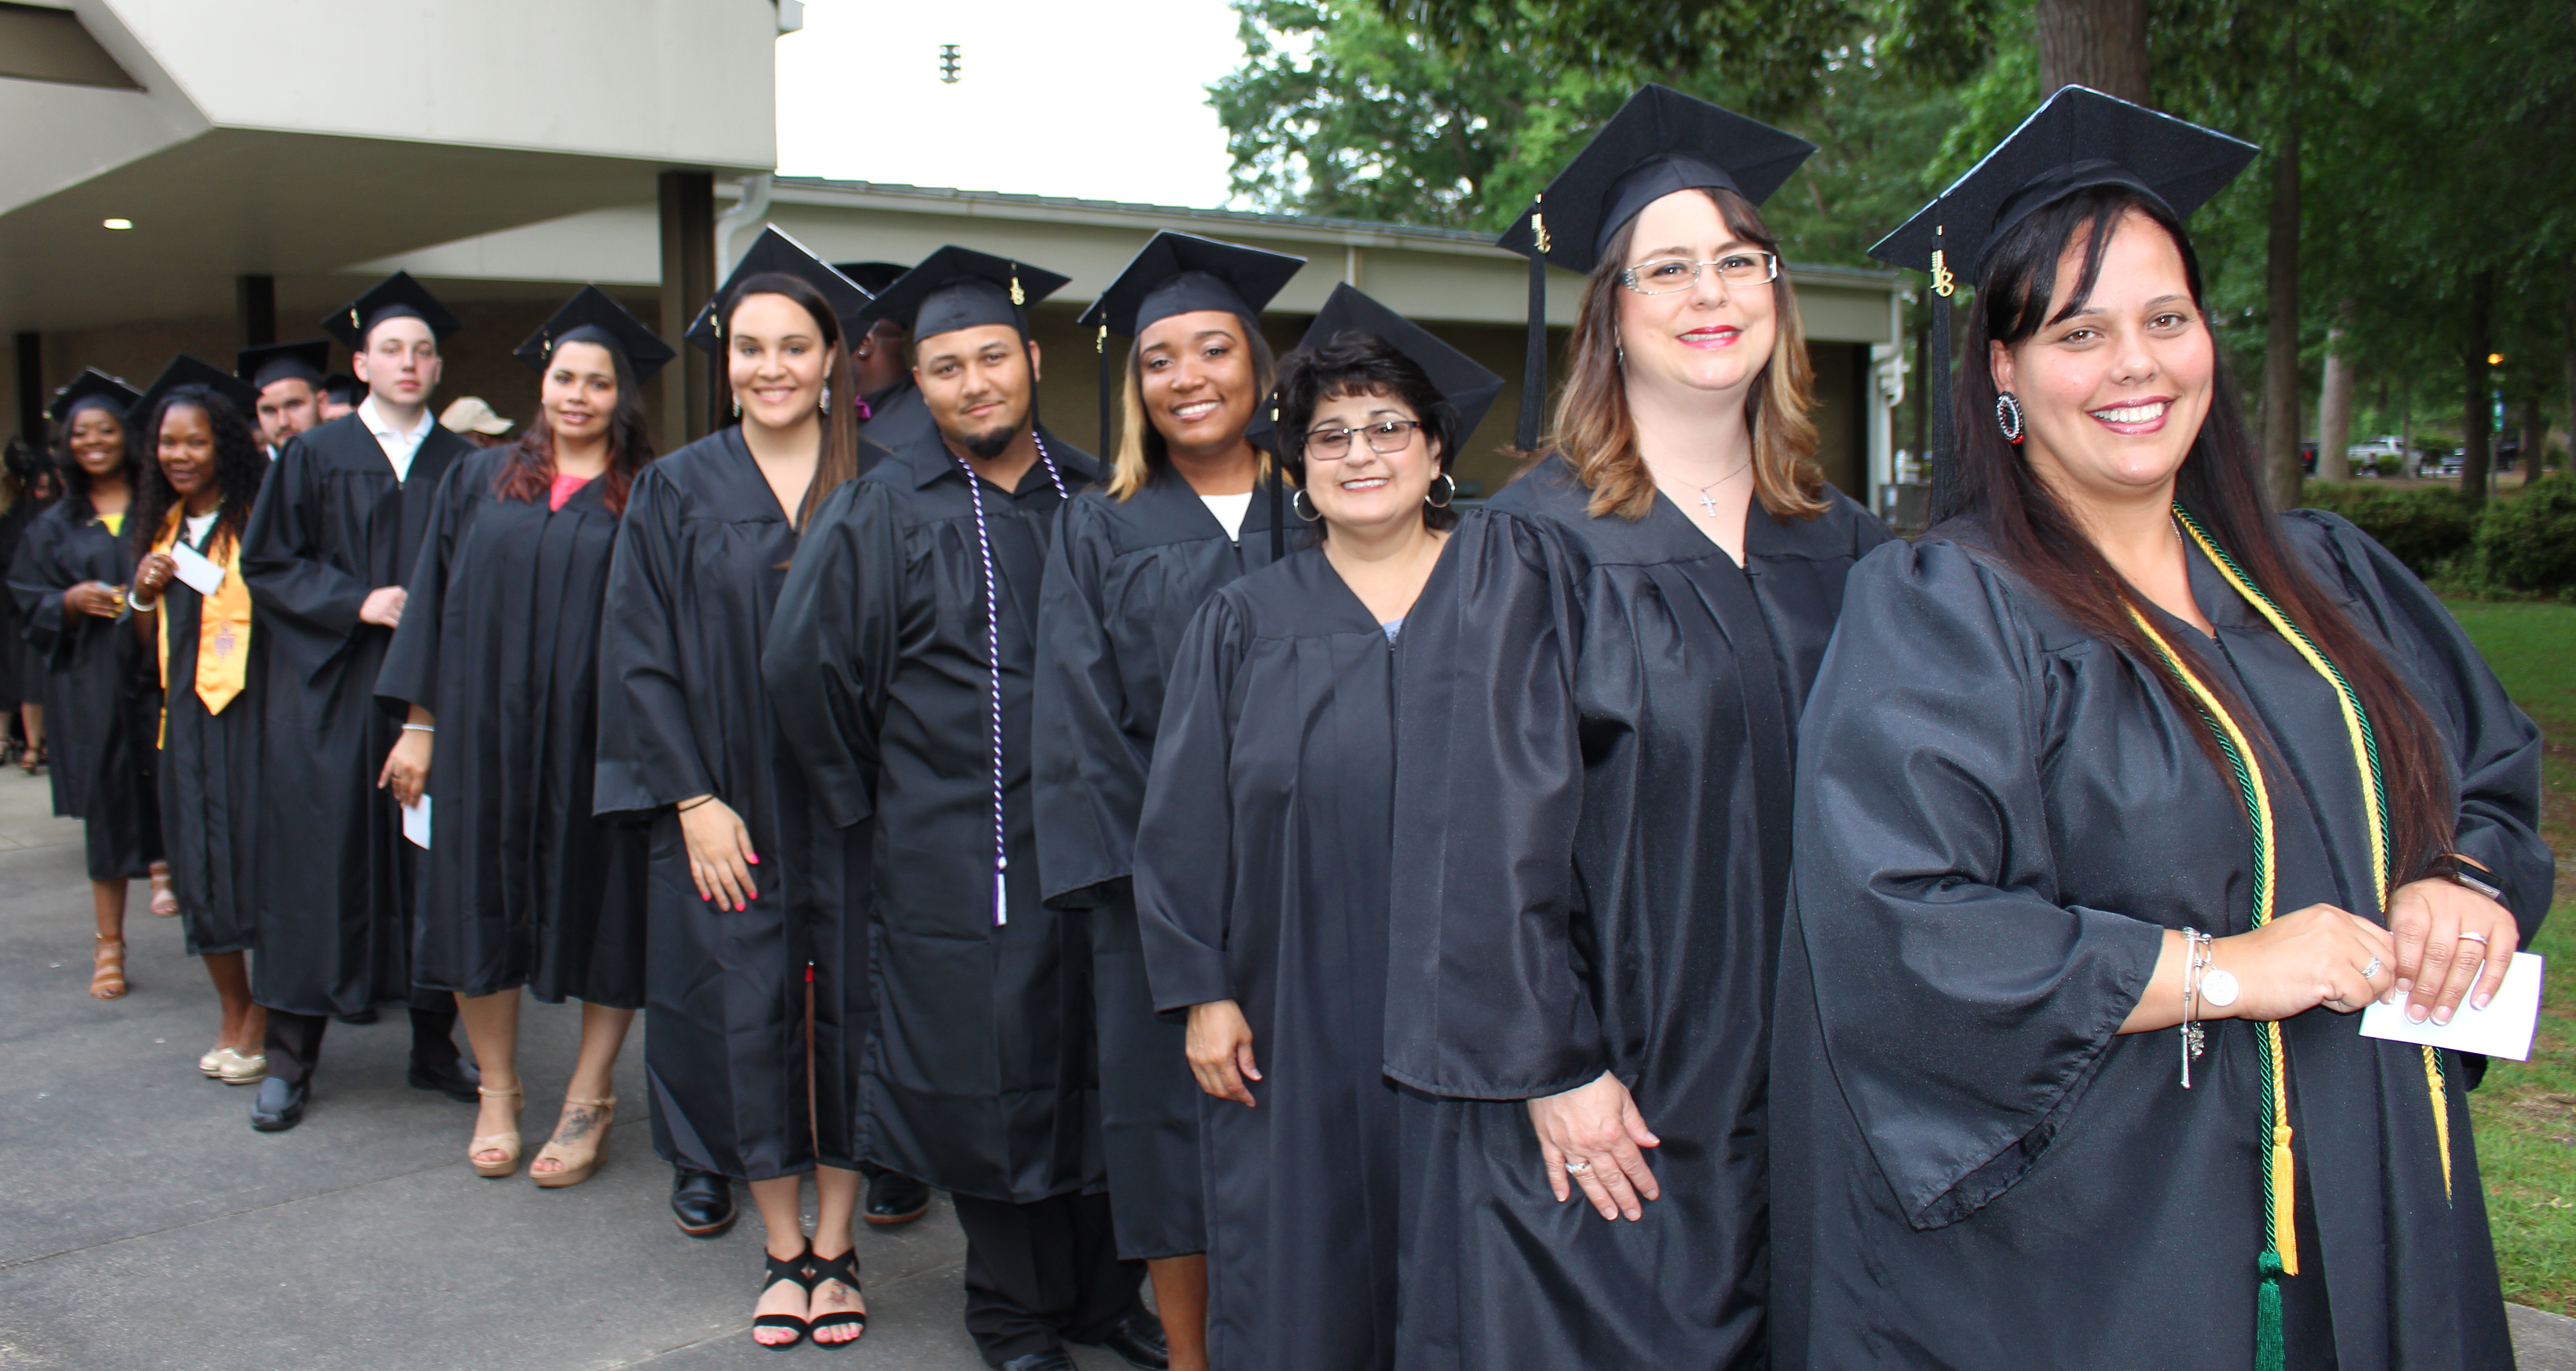 Bladen Community College celebrates graduates with commencement